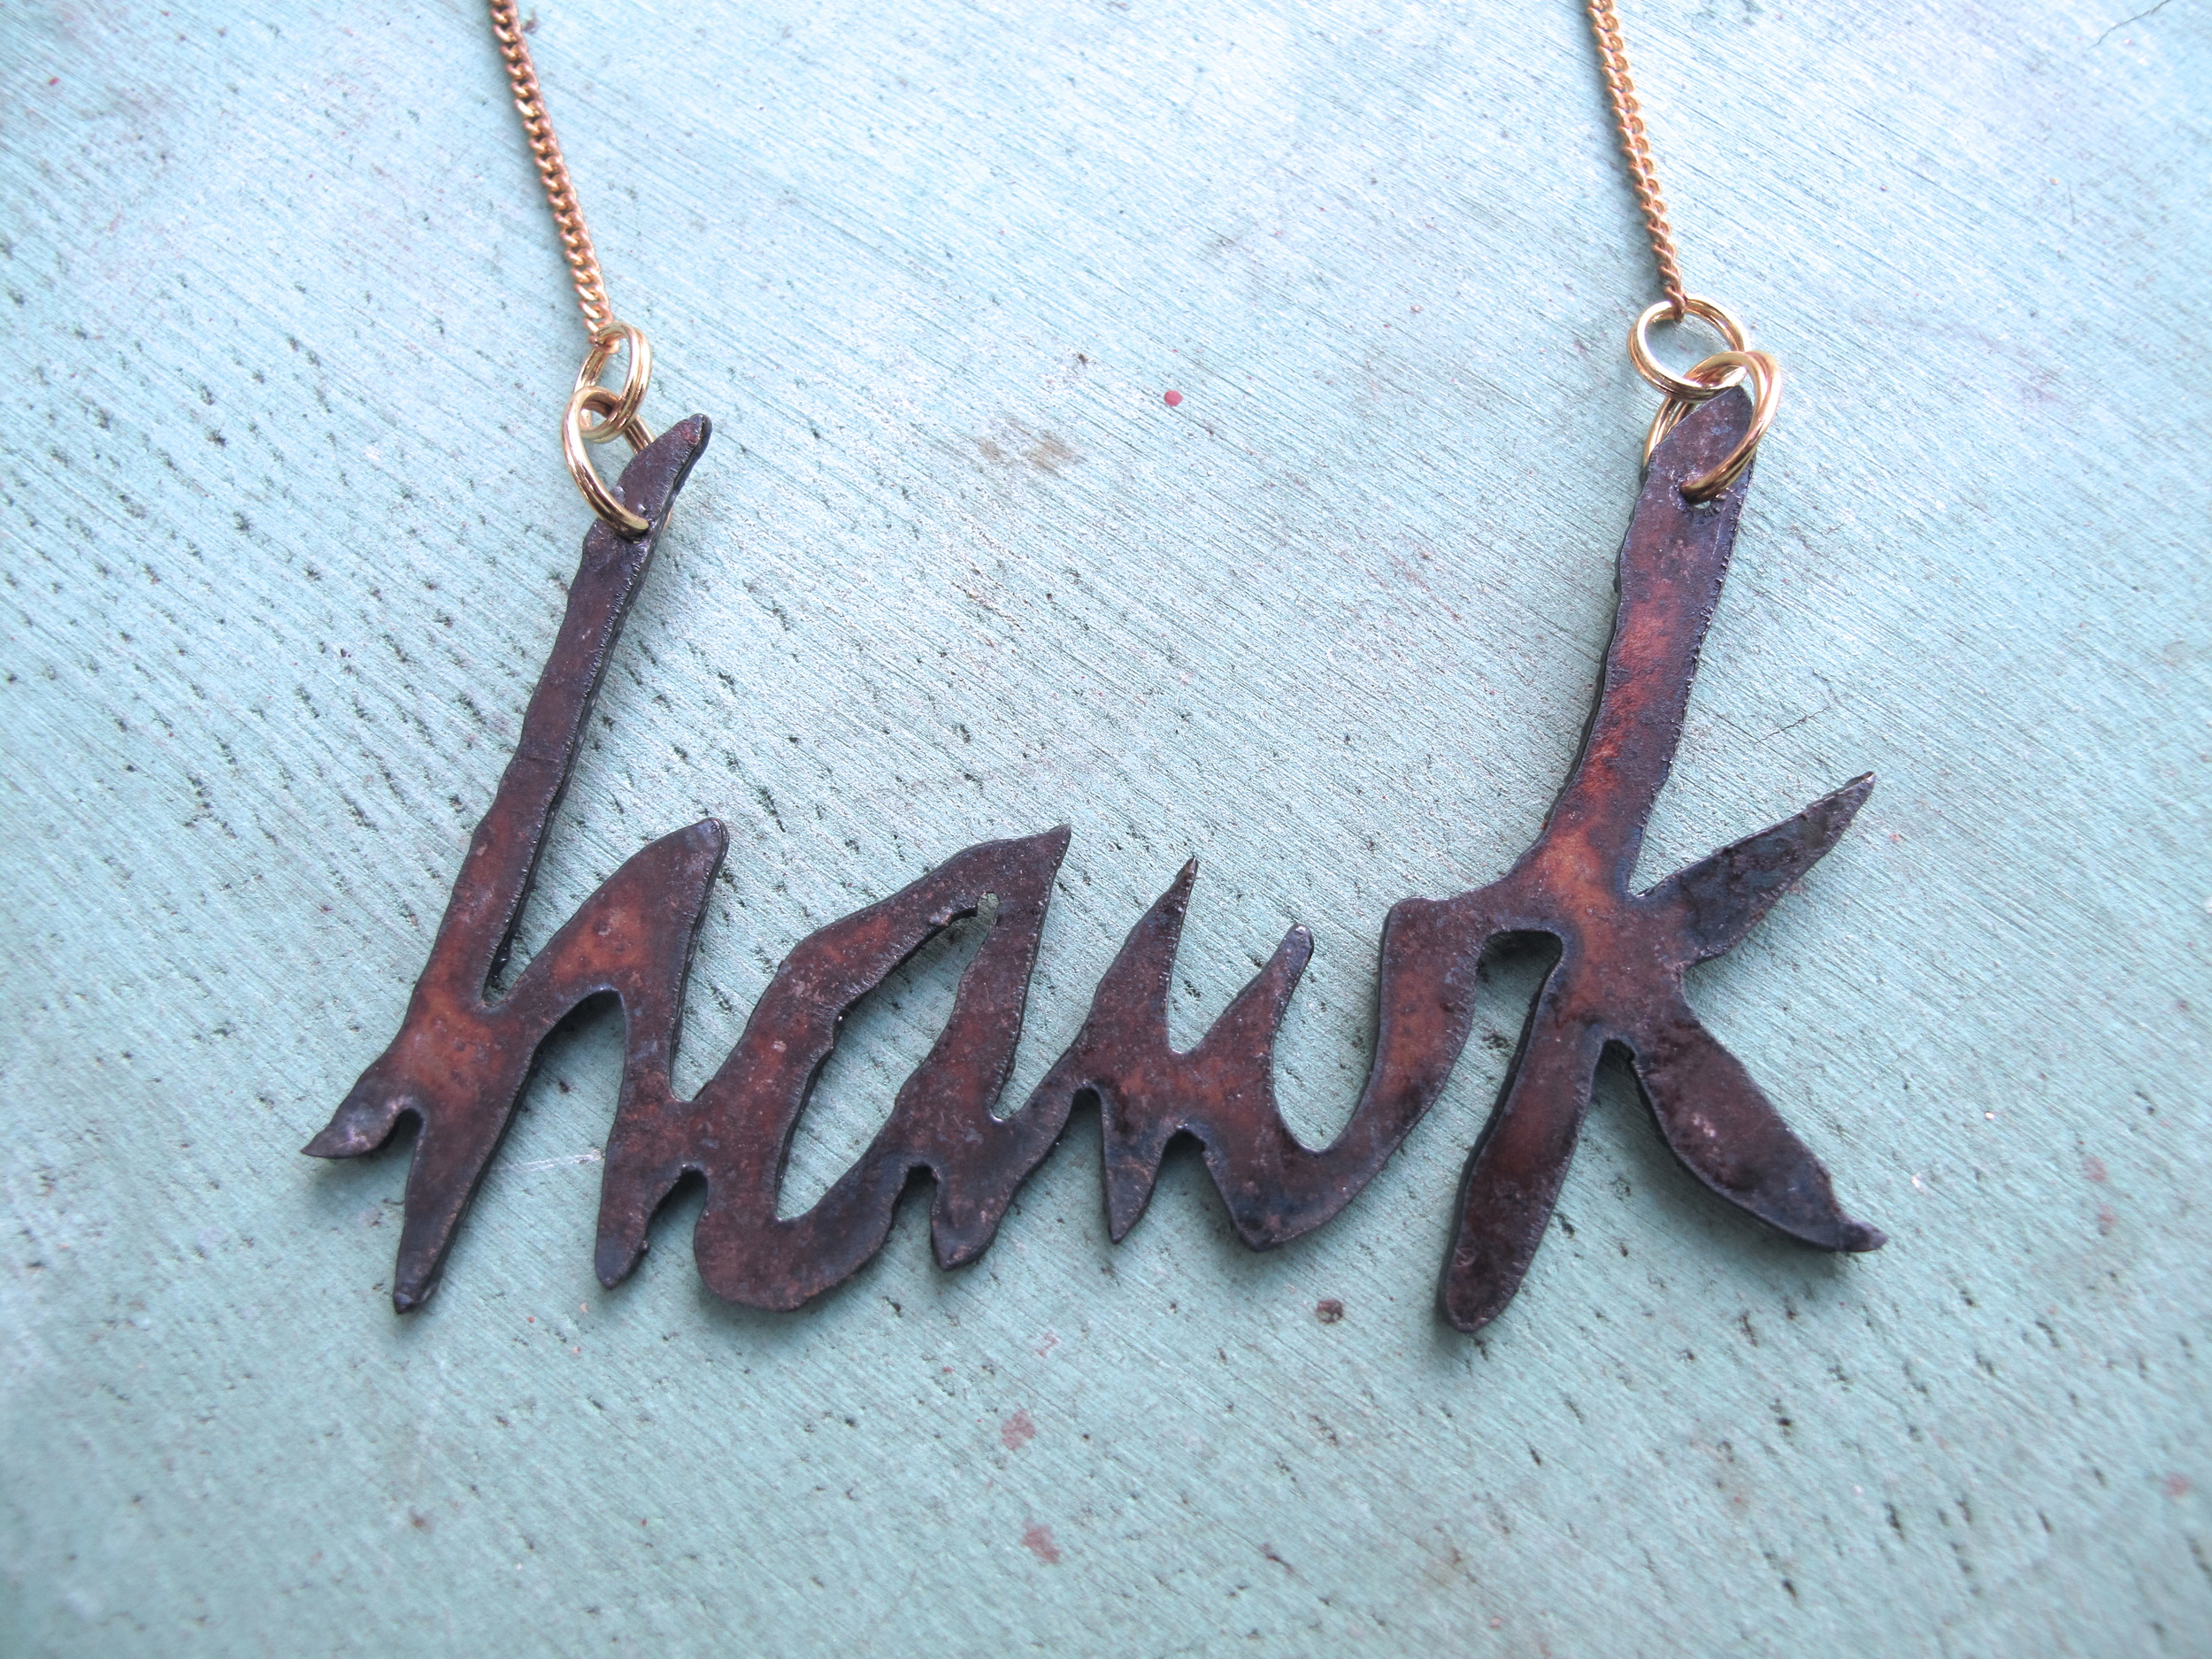 hawk necklace (detail)